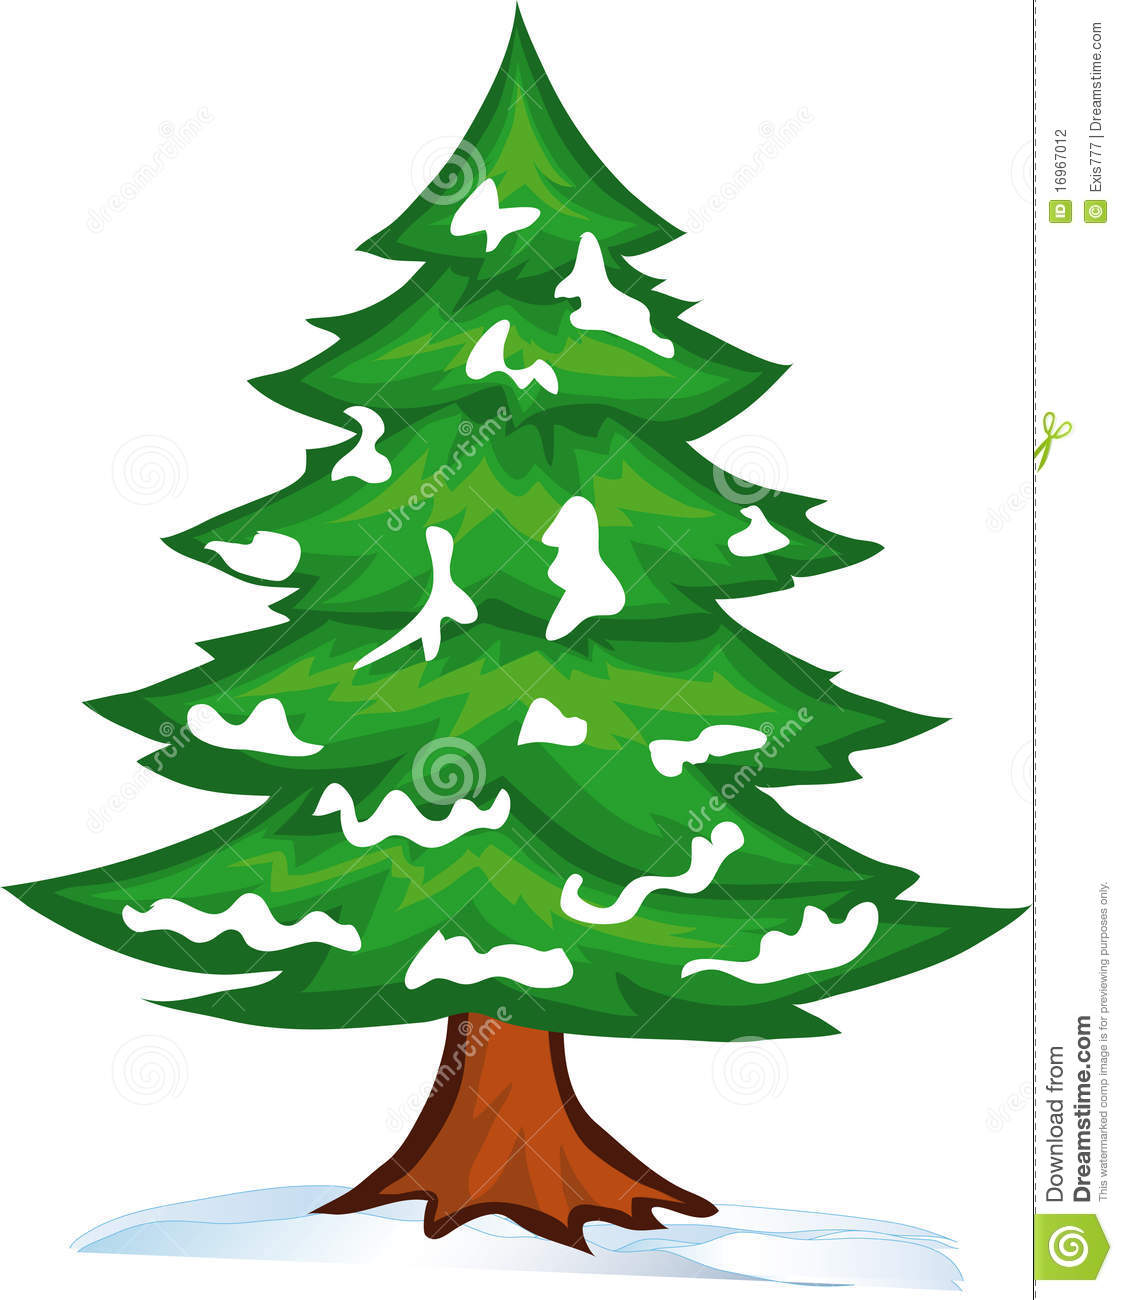 hight resolution of 1123x1300 pine tree clip art for christmas fun for christmas